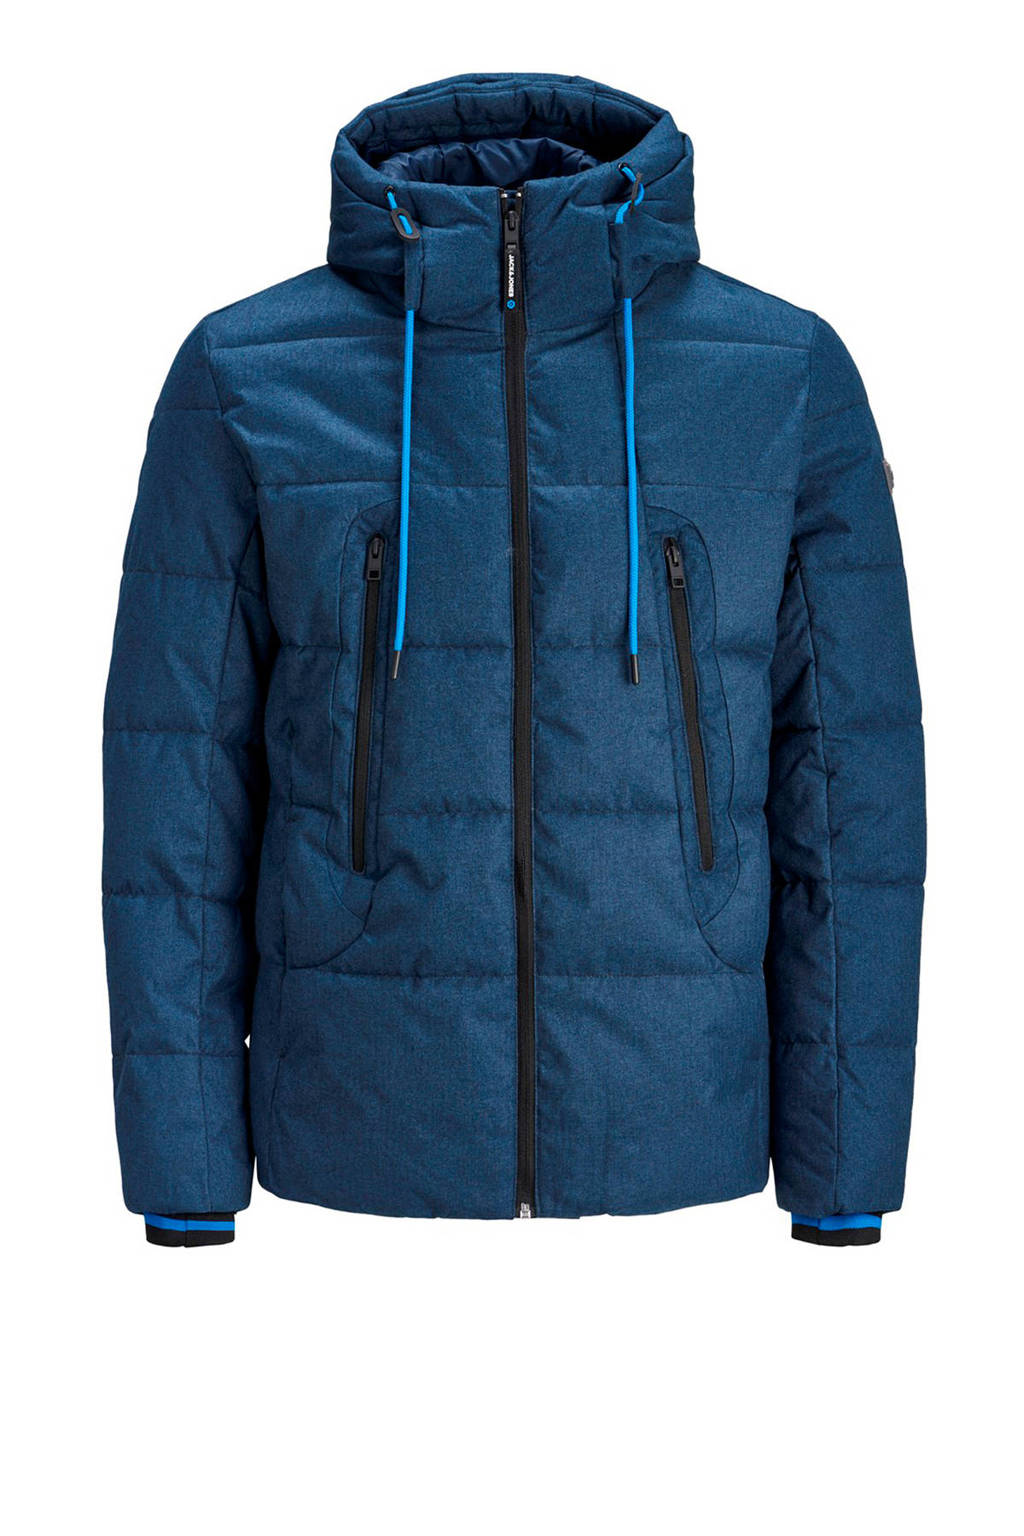 JACK & JONES CORE winterjas blauw, Blauw